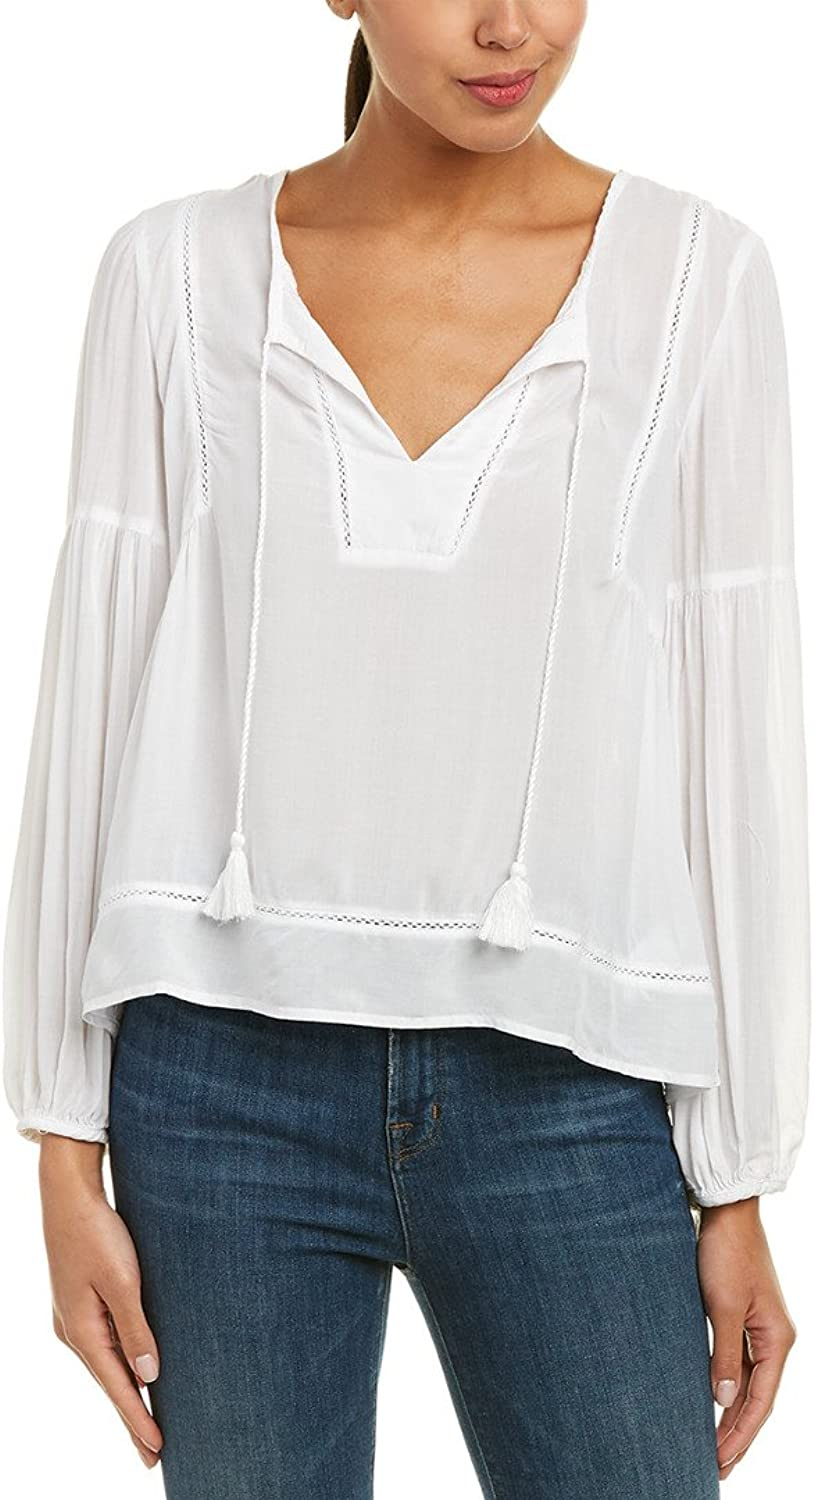 Splendid Womens Paradise Cove Solid Bell Sleeve Top